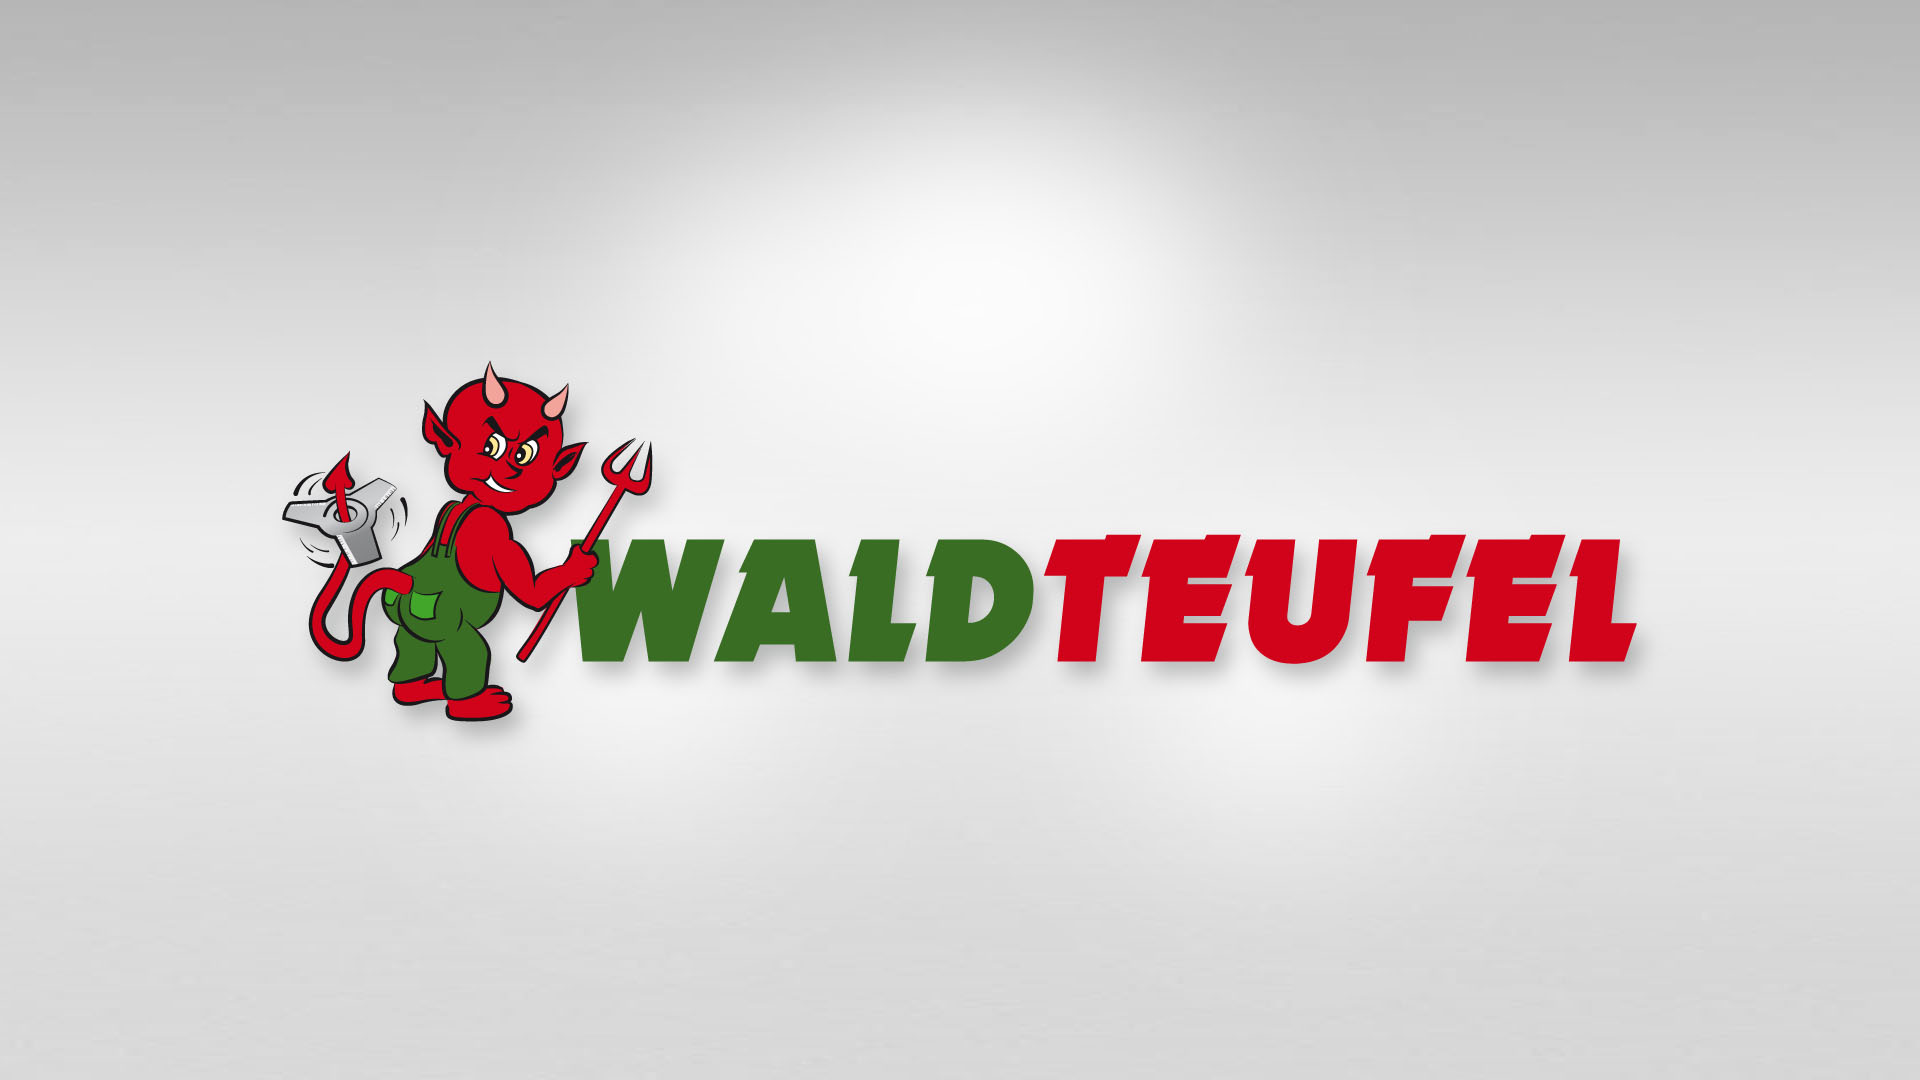 Logo Waldteufel - Logo Comic-Zeichnung, Illustration